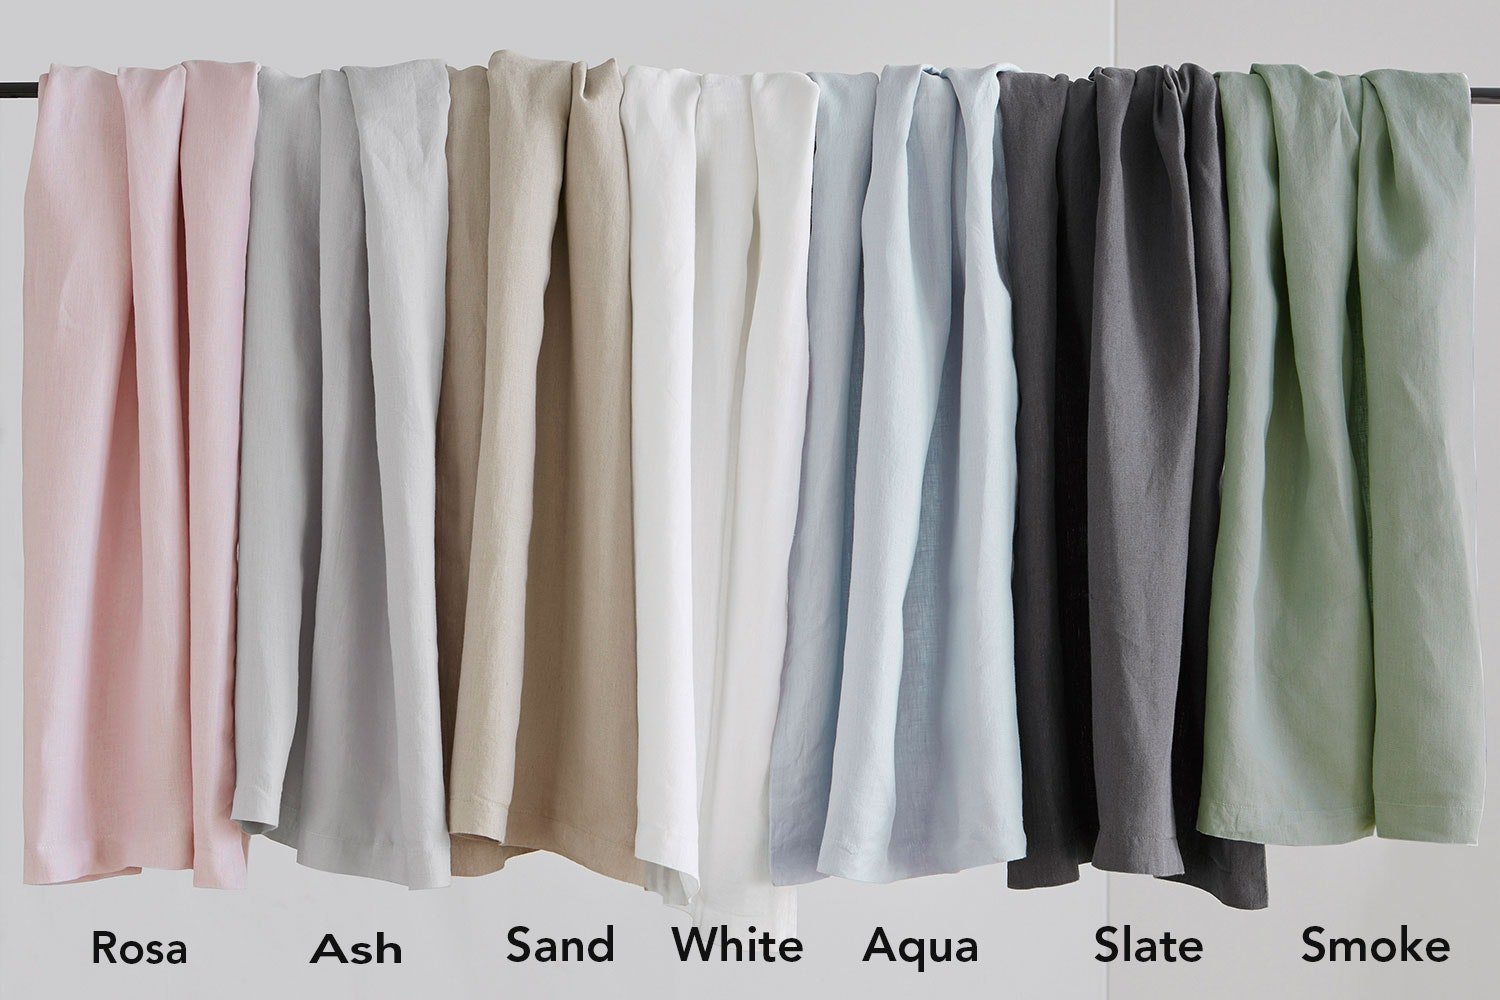 Linen Sheet Sets with Names